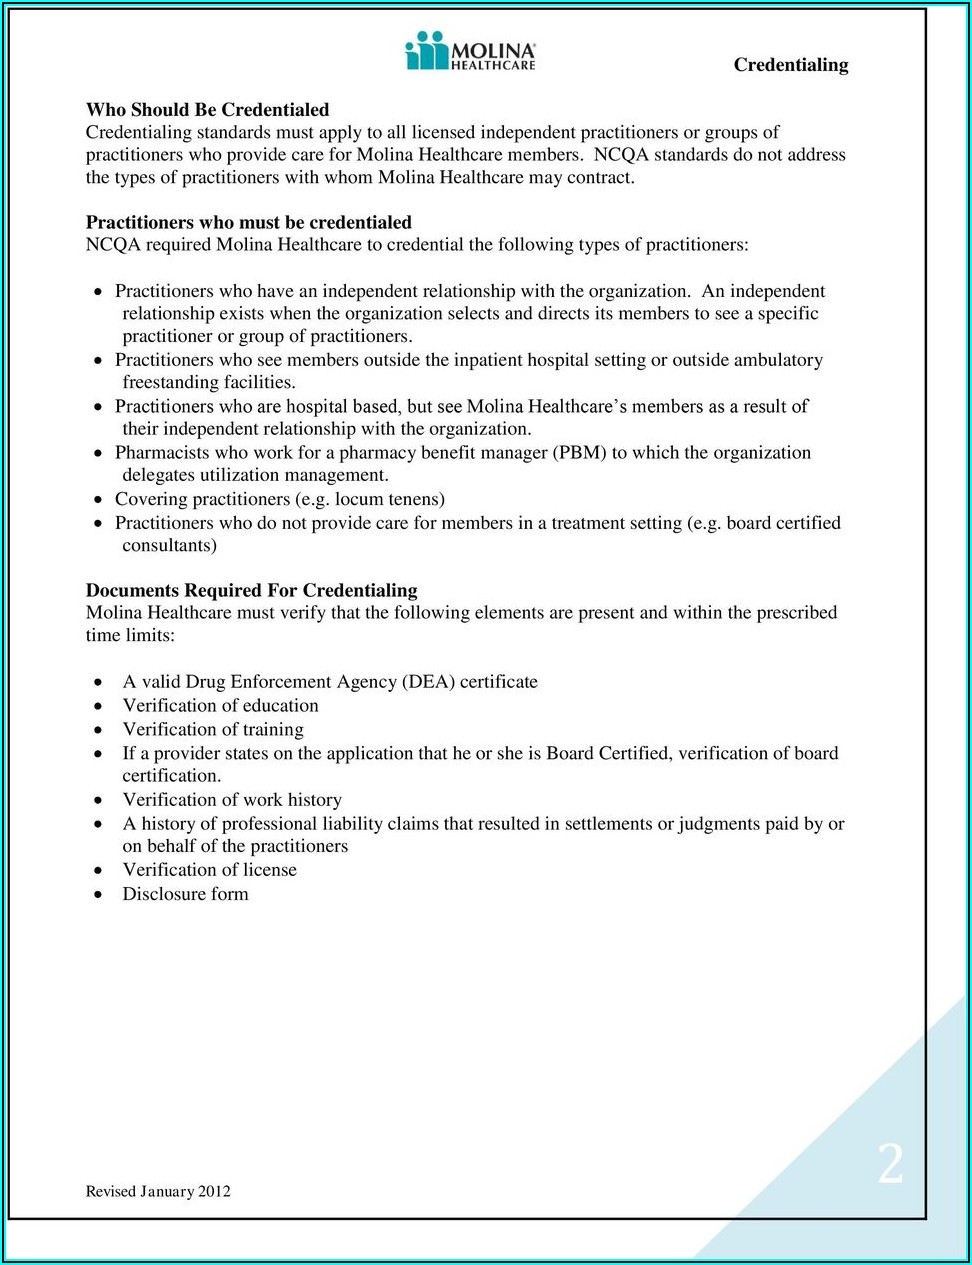 Molina Healthcare Credentialing Forms